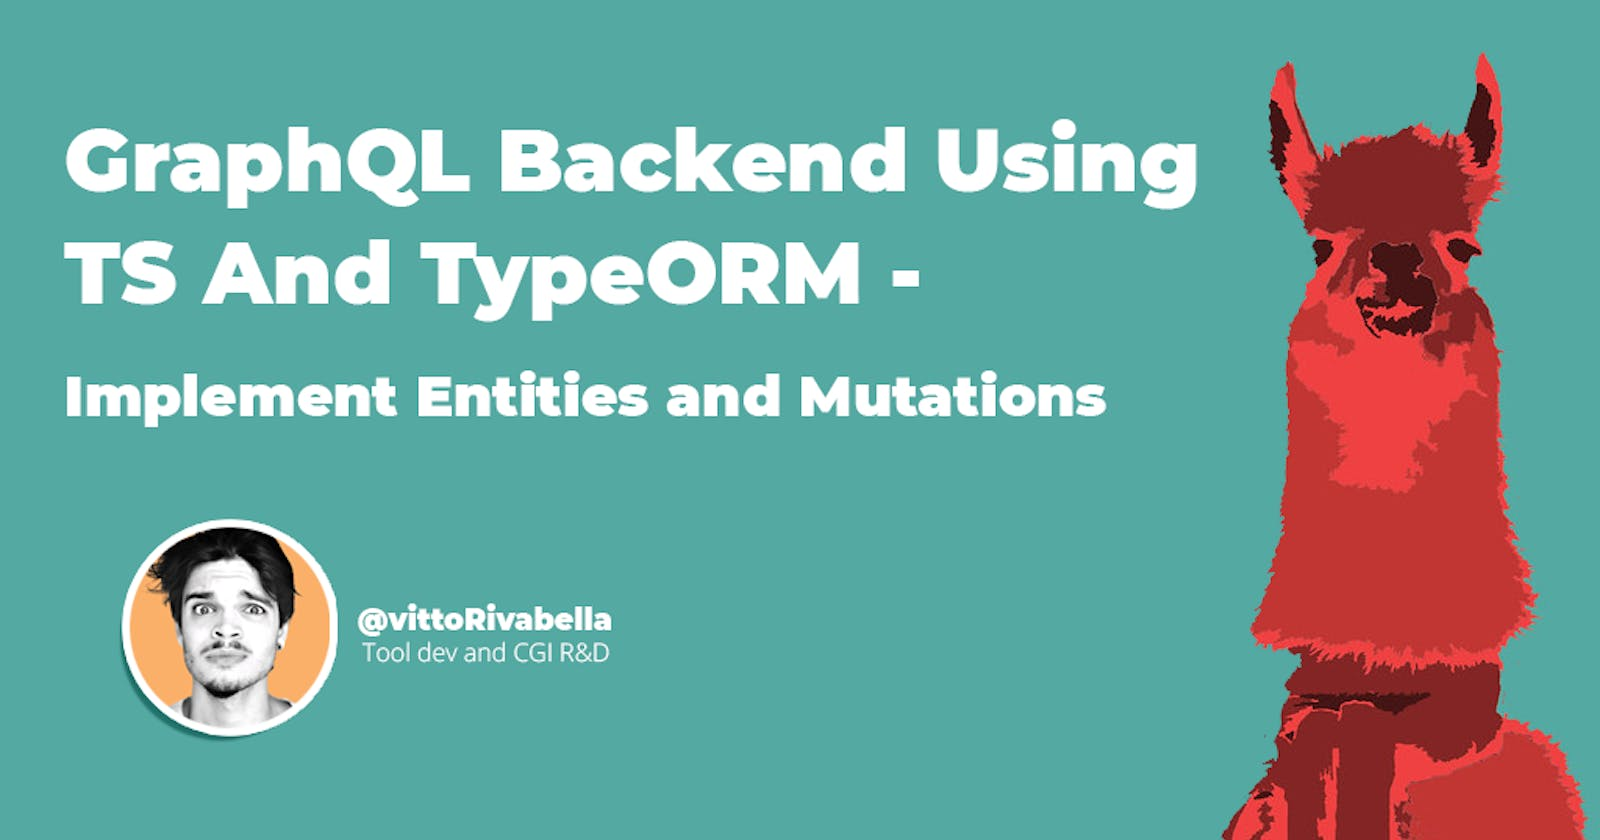 GraphQL Backend Using TS And TypeORM - Implement Entities and Mutations | Pt. 2